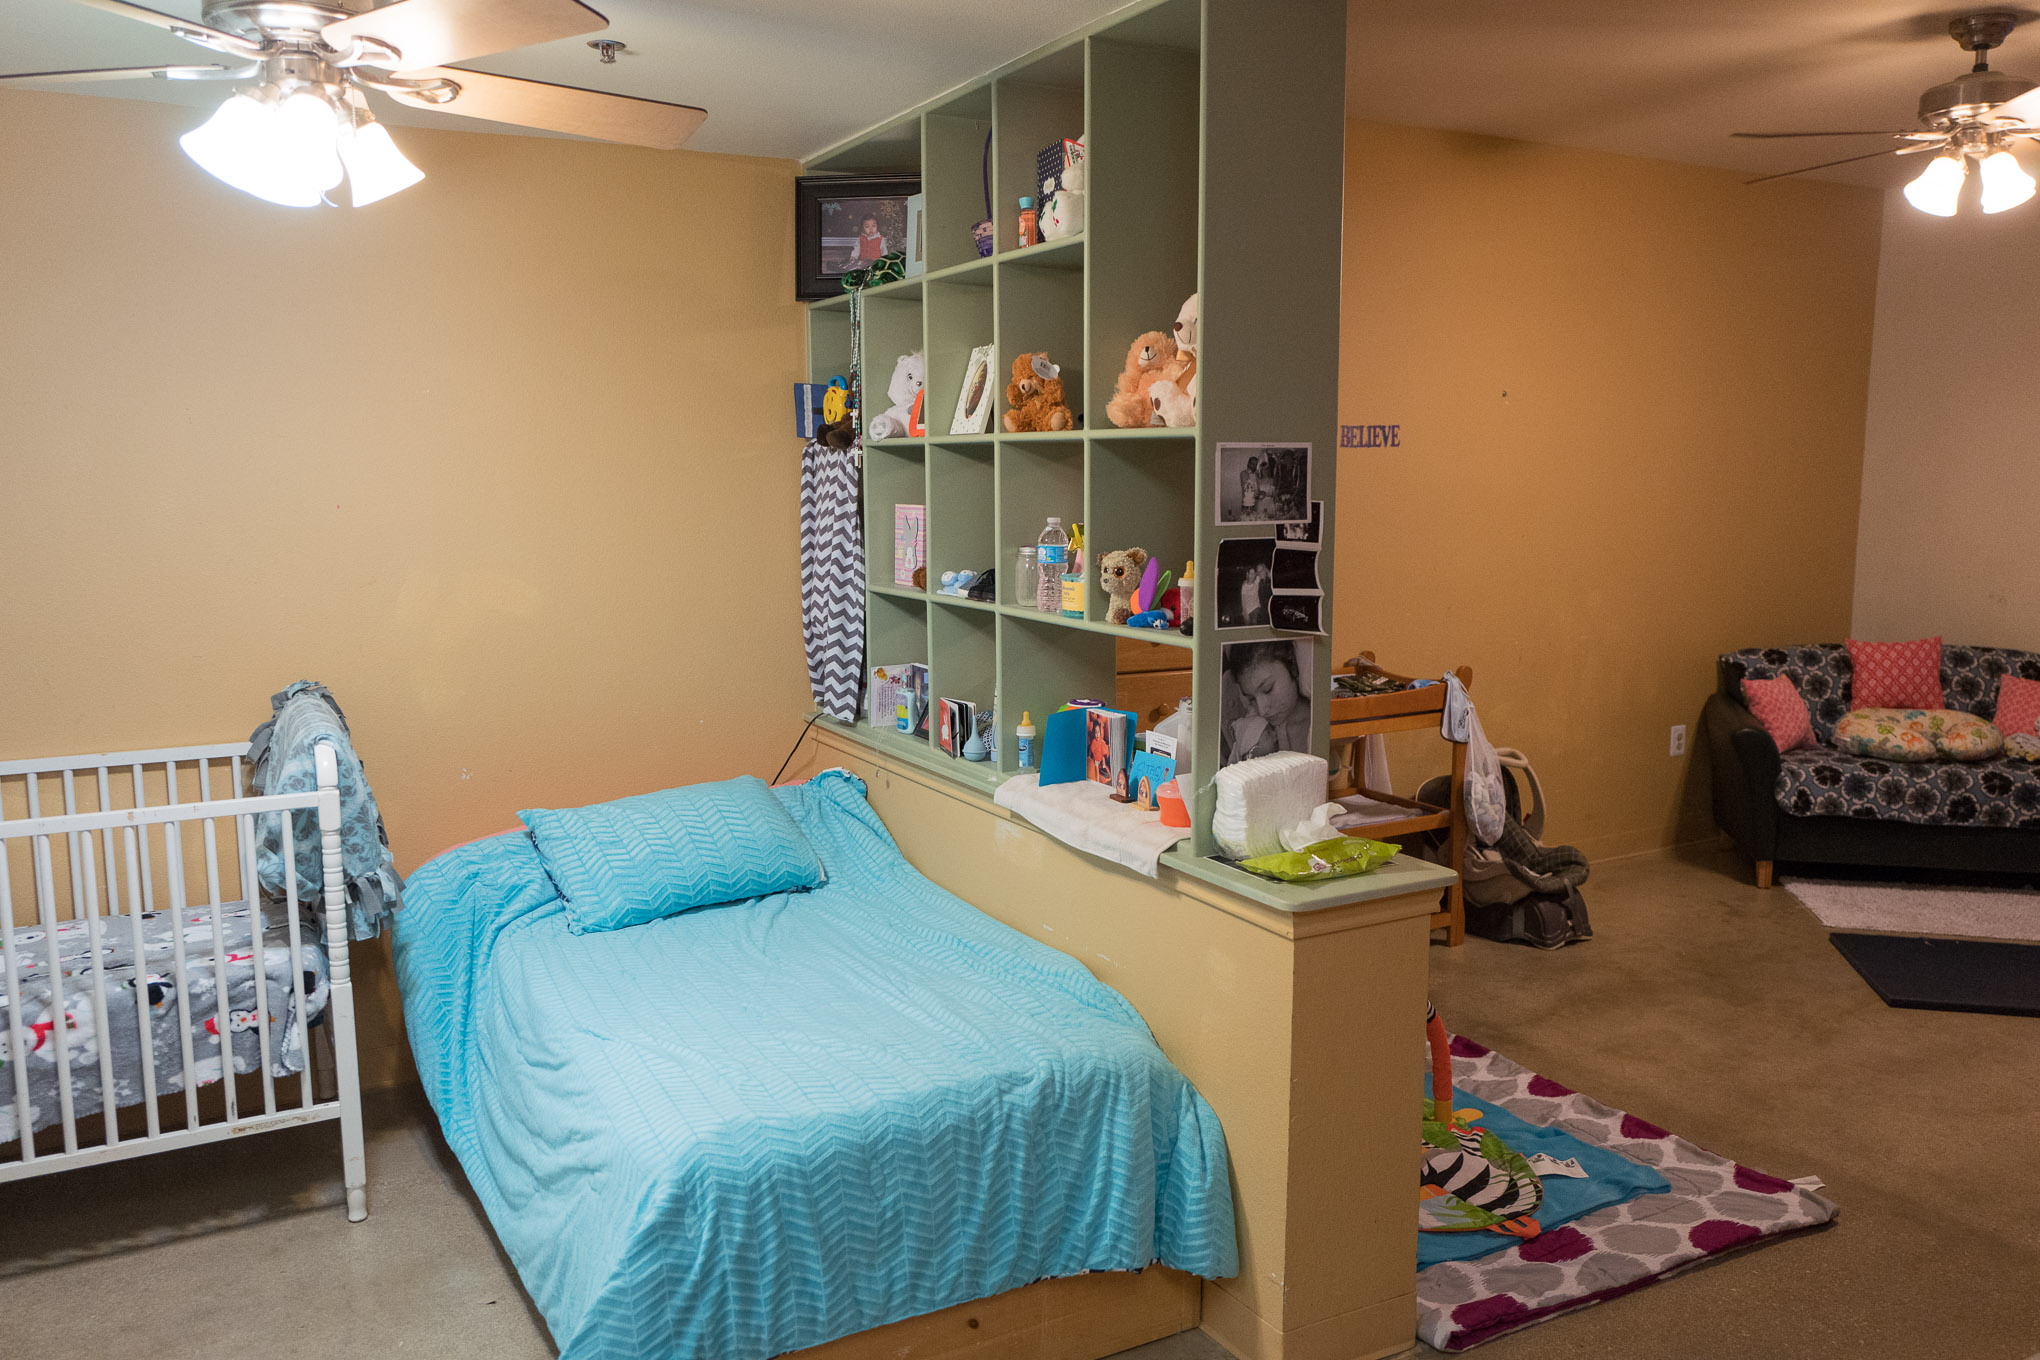 Private rooms with built in kitchens are provided for every young mother in the program. Photo by Scott Ball.